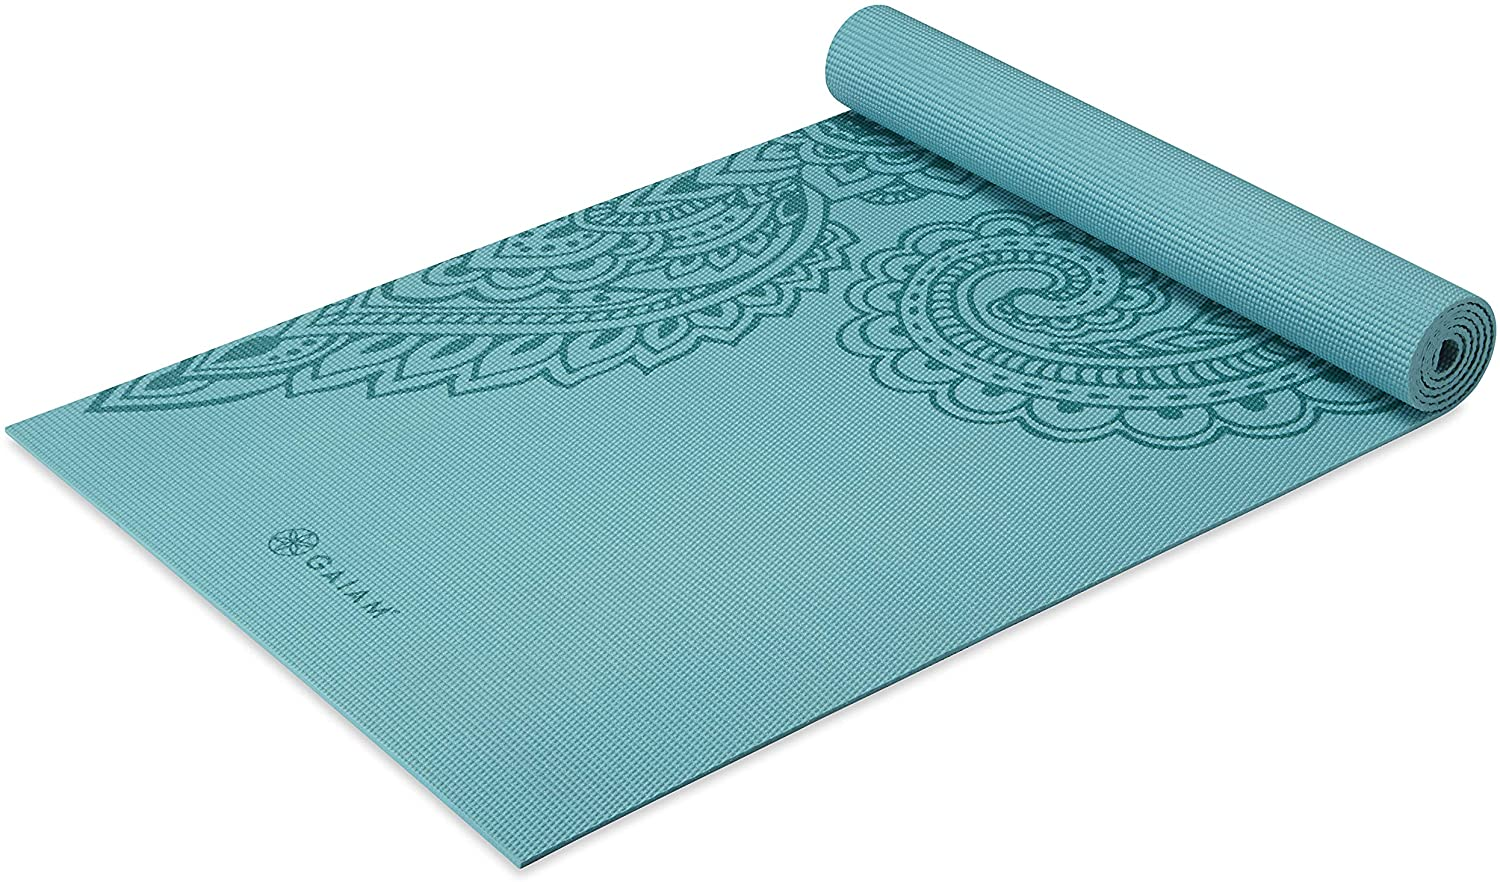 5mm Thick Non Slip Exercise & Fitness Mat  Paisley Frost